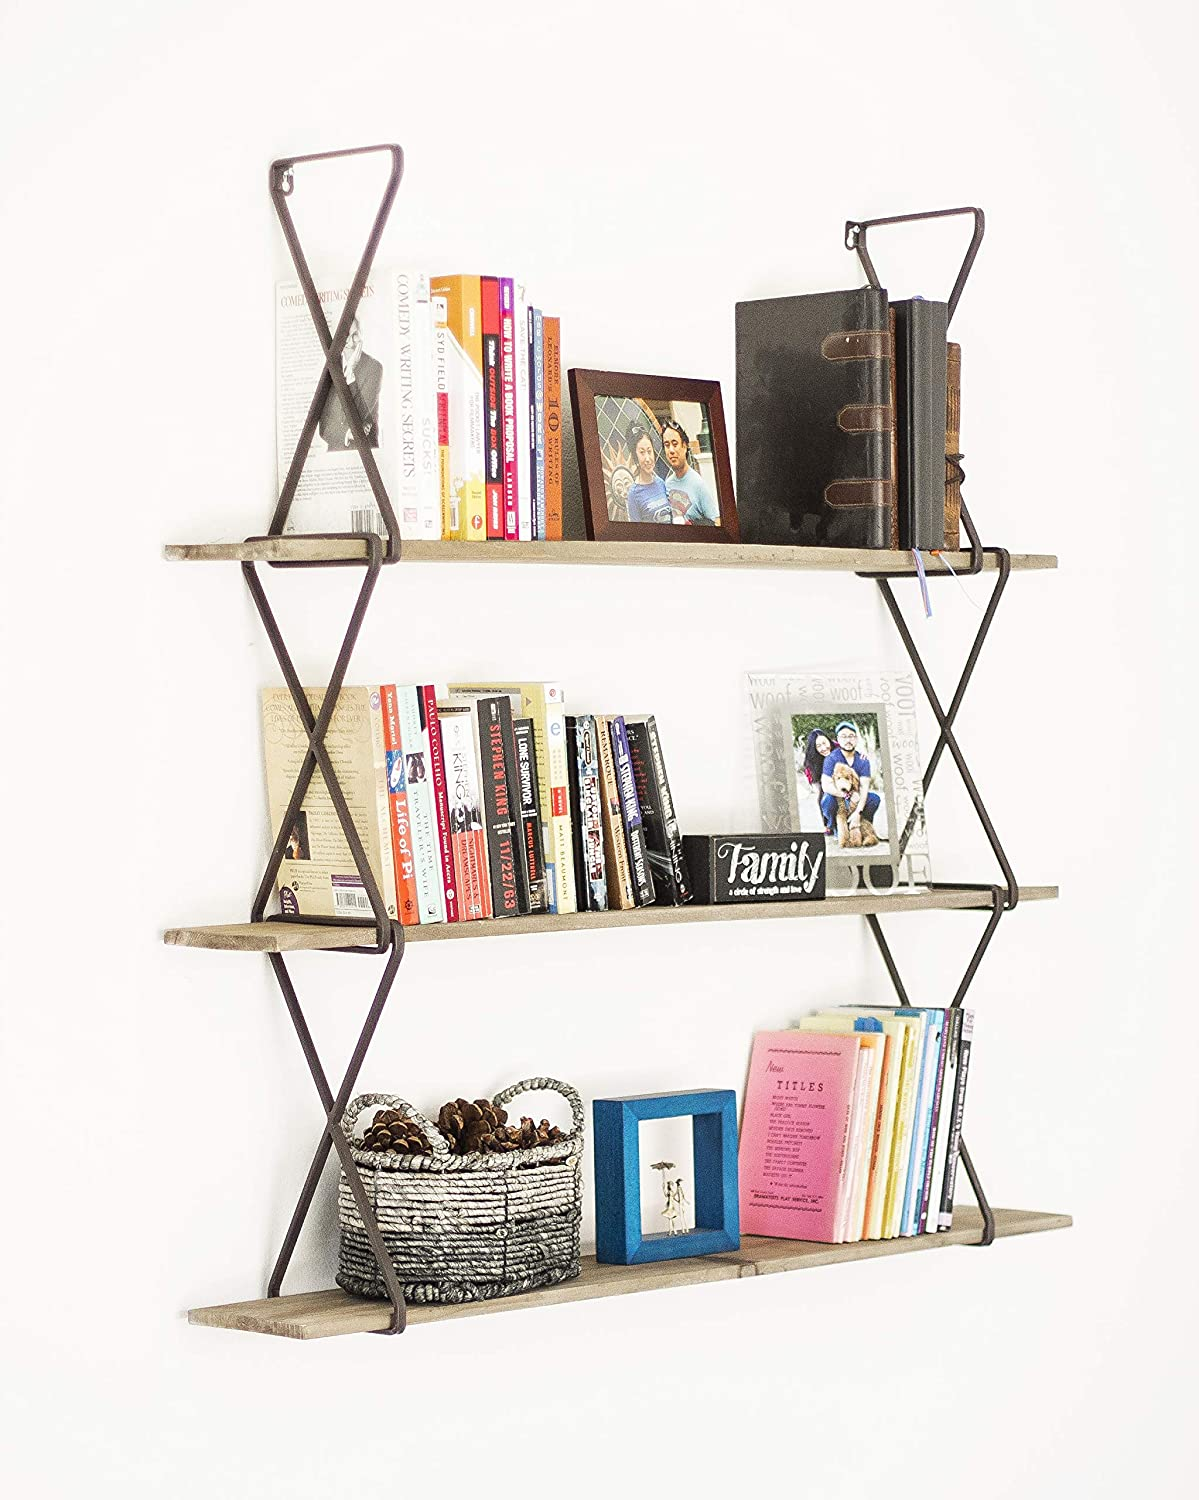 Avignon Home 3 Tier Wall Mounted Hanging Bookshelves Floating Book Shelf Rustic Wood Bookcase for Storage, Display Decor Bookshelf Organizer